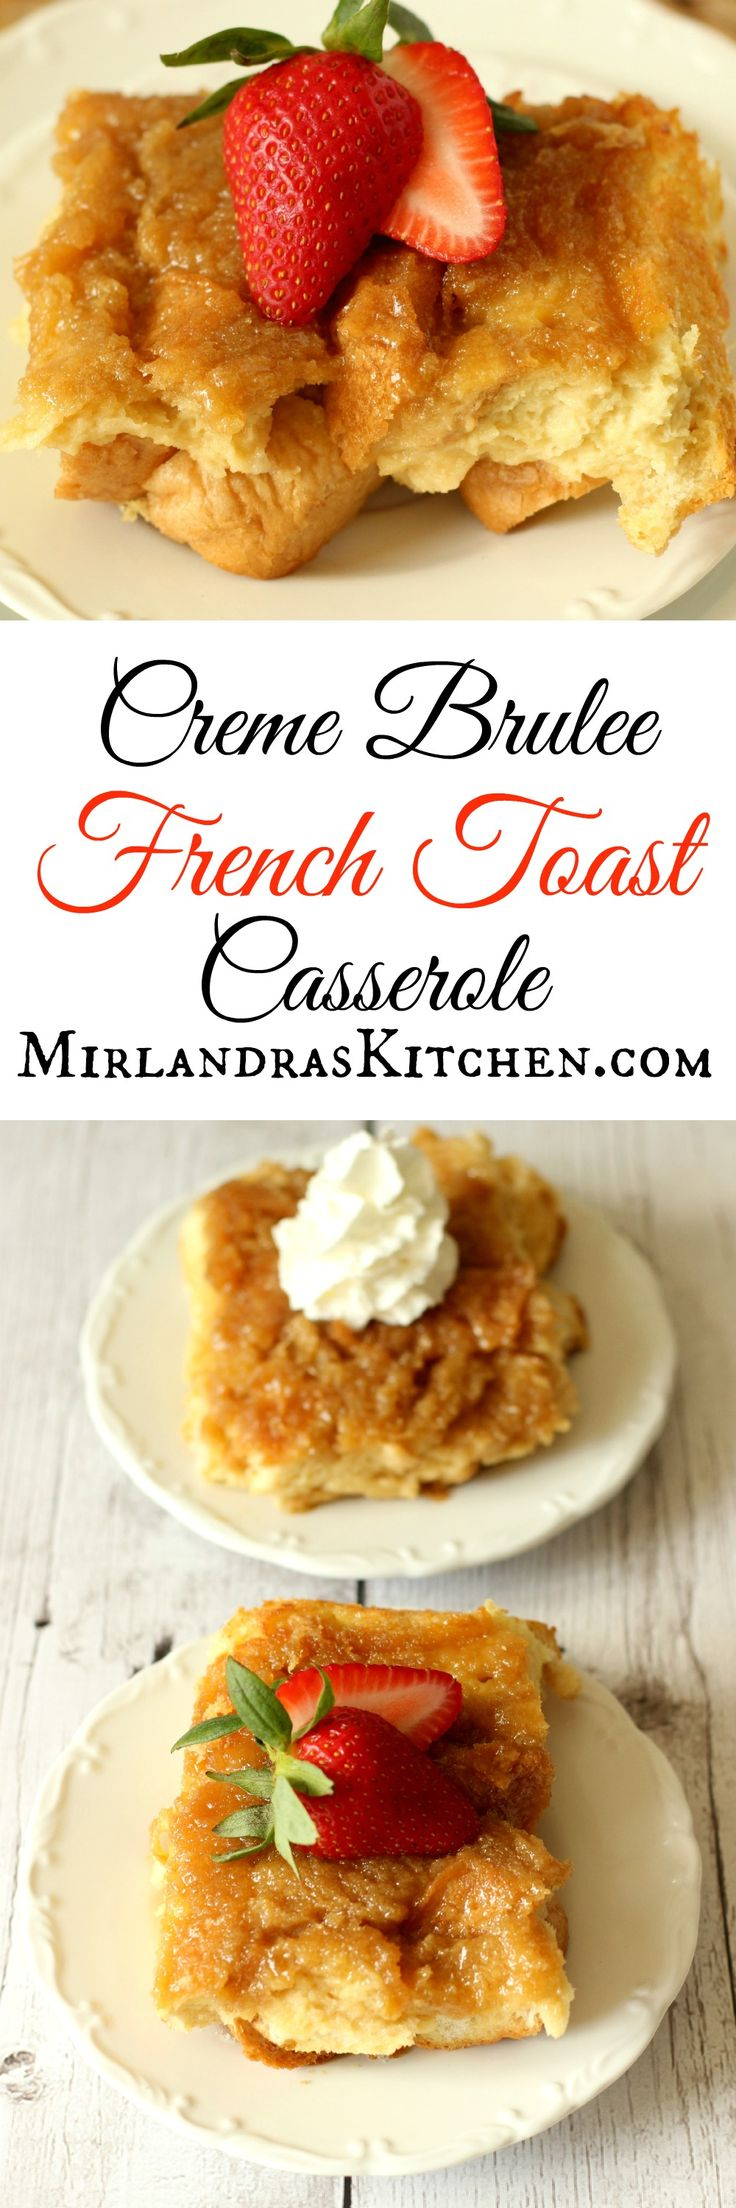 Overnight French Toast on Pinterest | French Toast, Overnight French ...